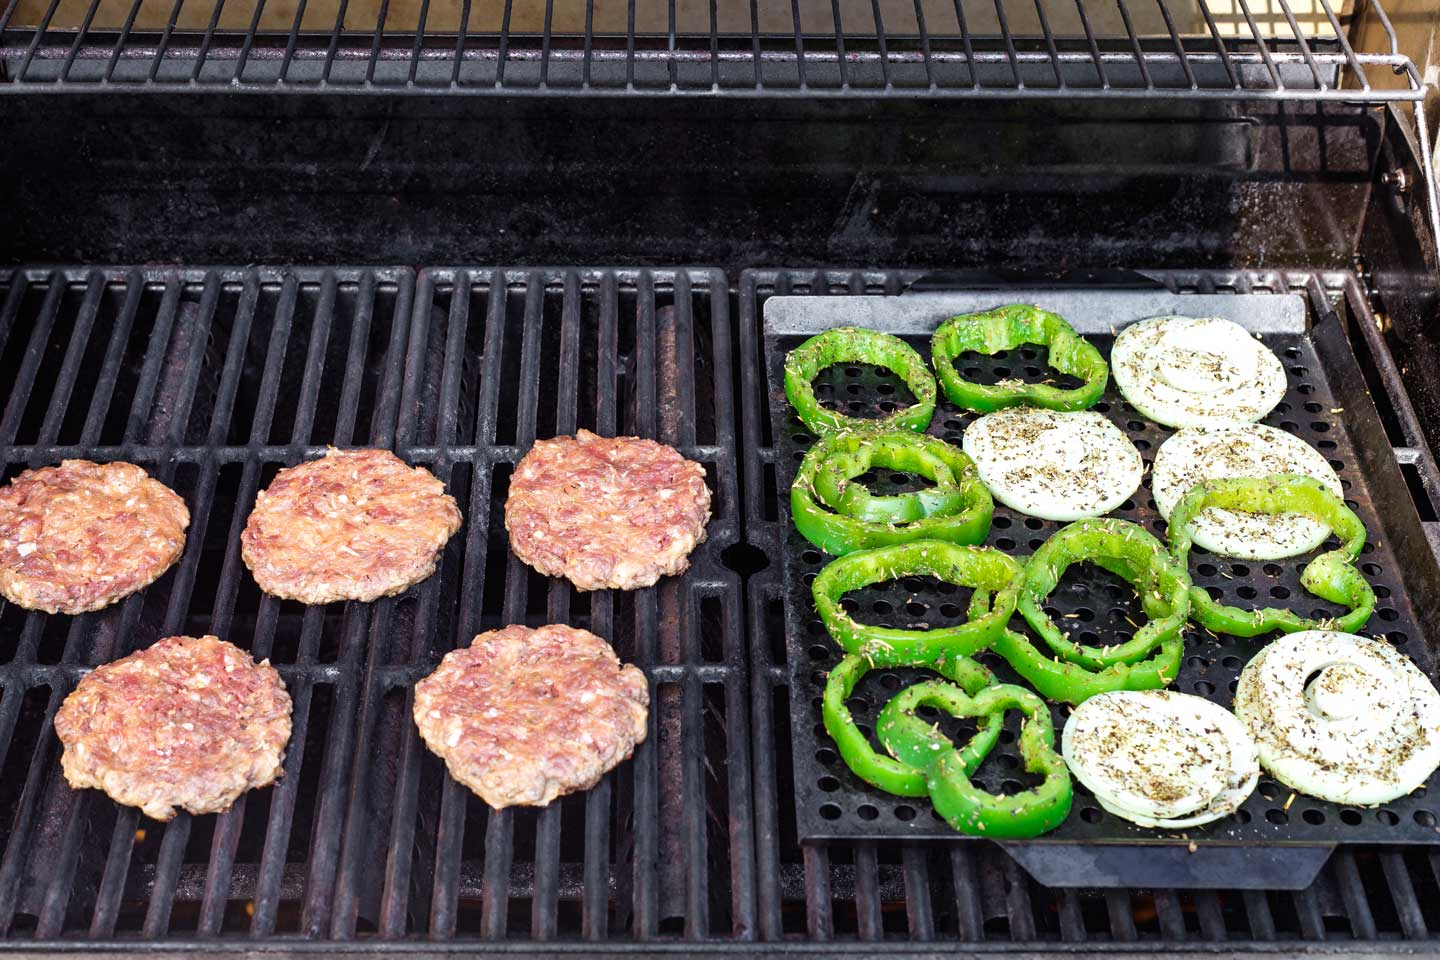 Hamburgers and veggies cooking on grill.